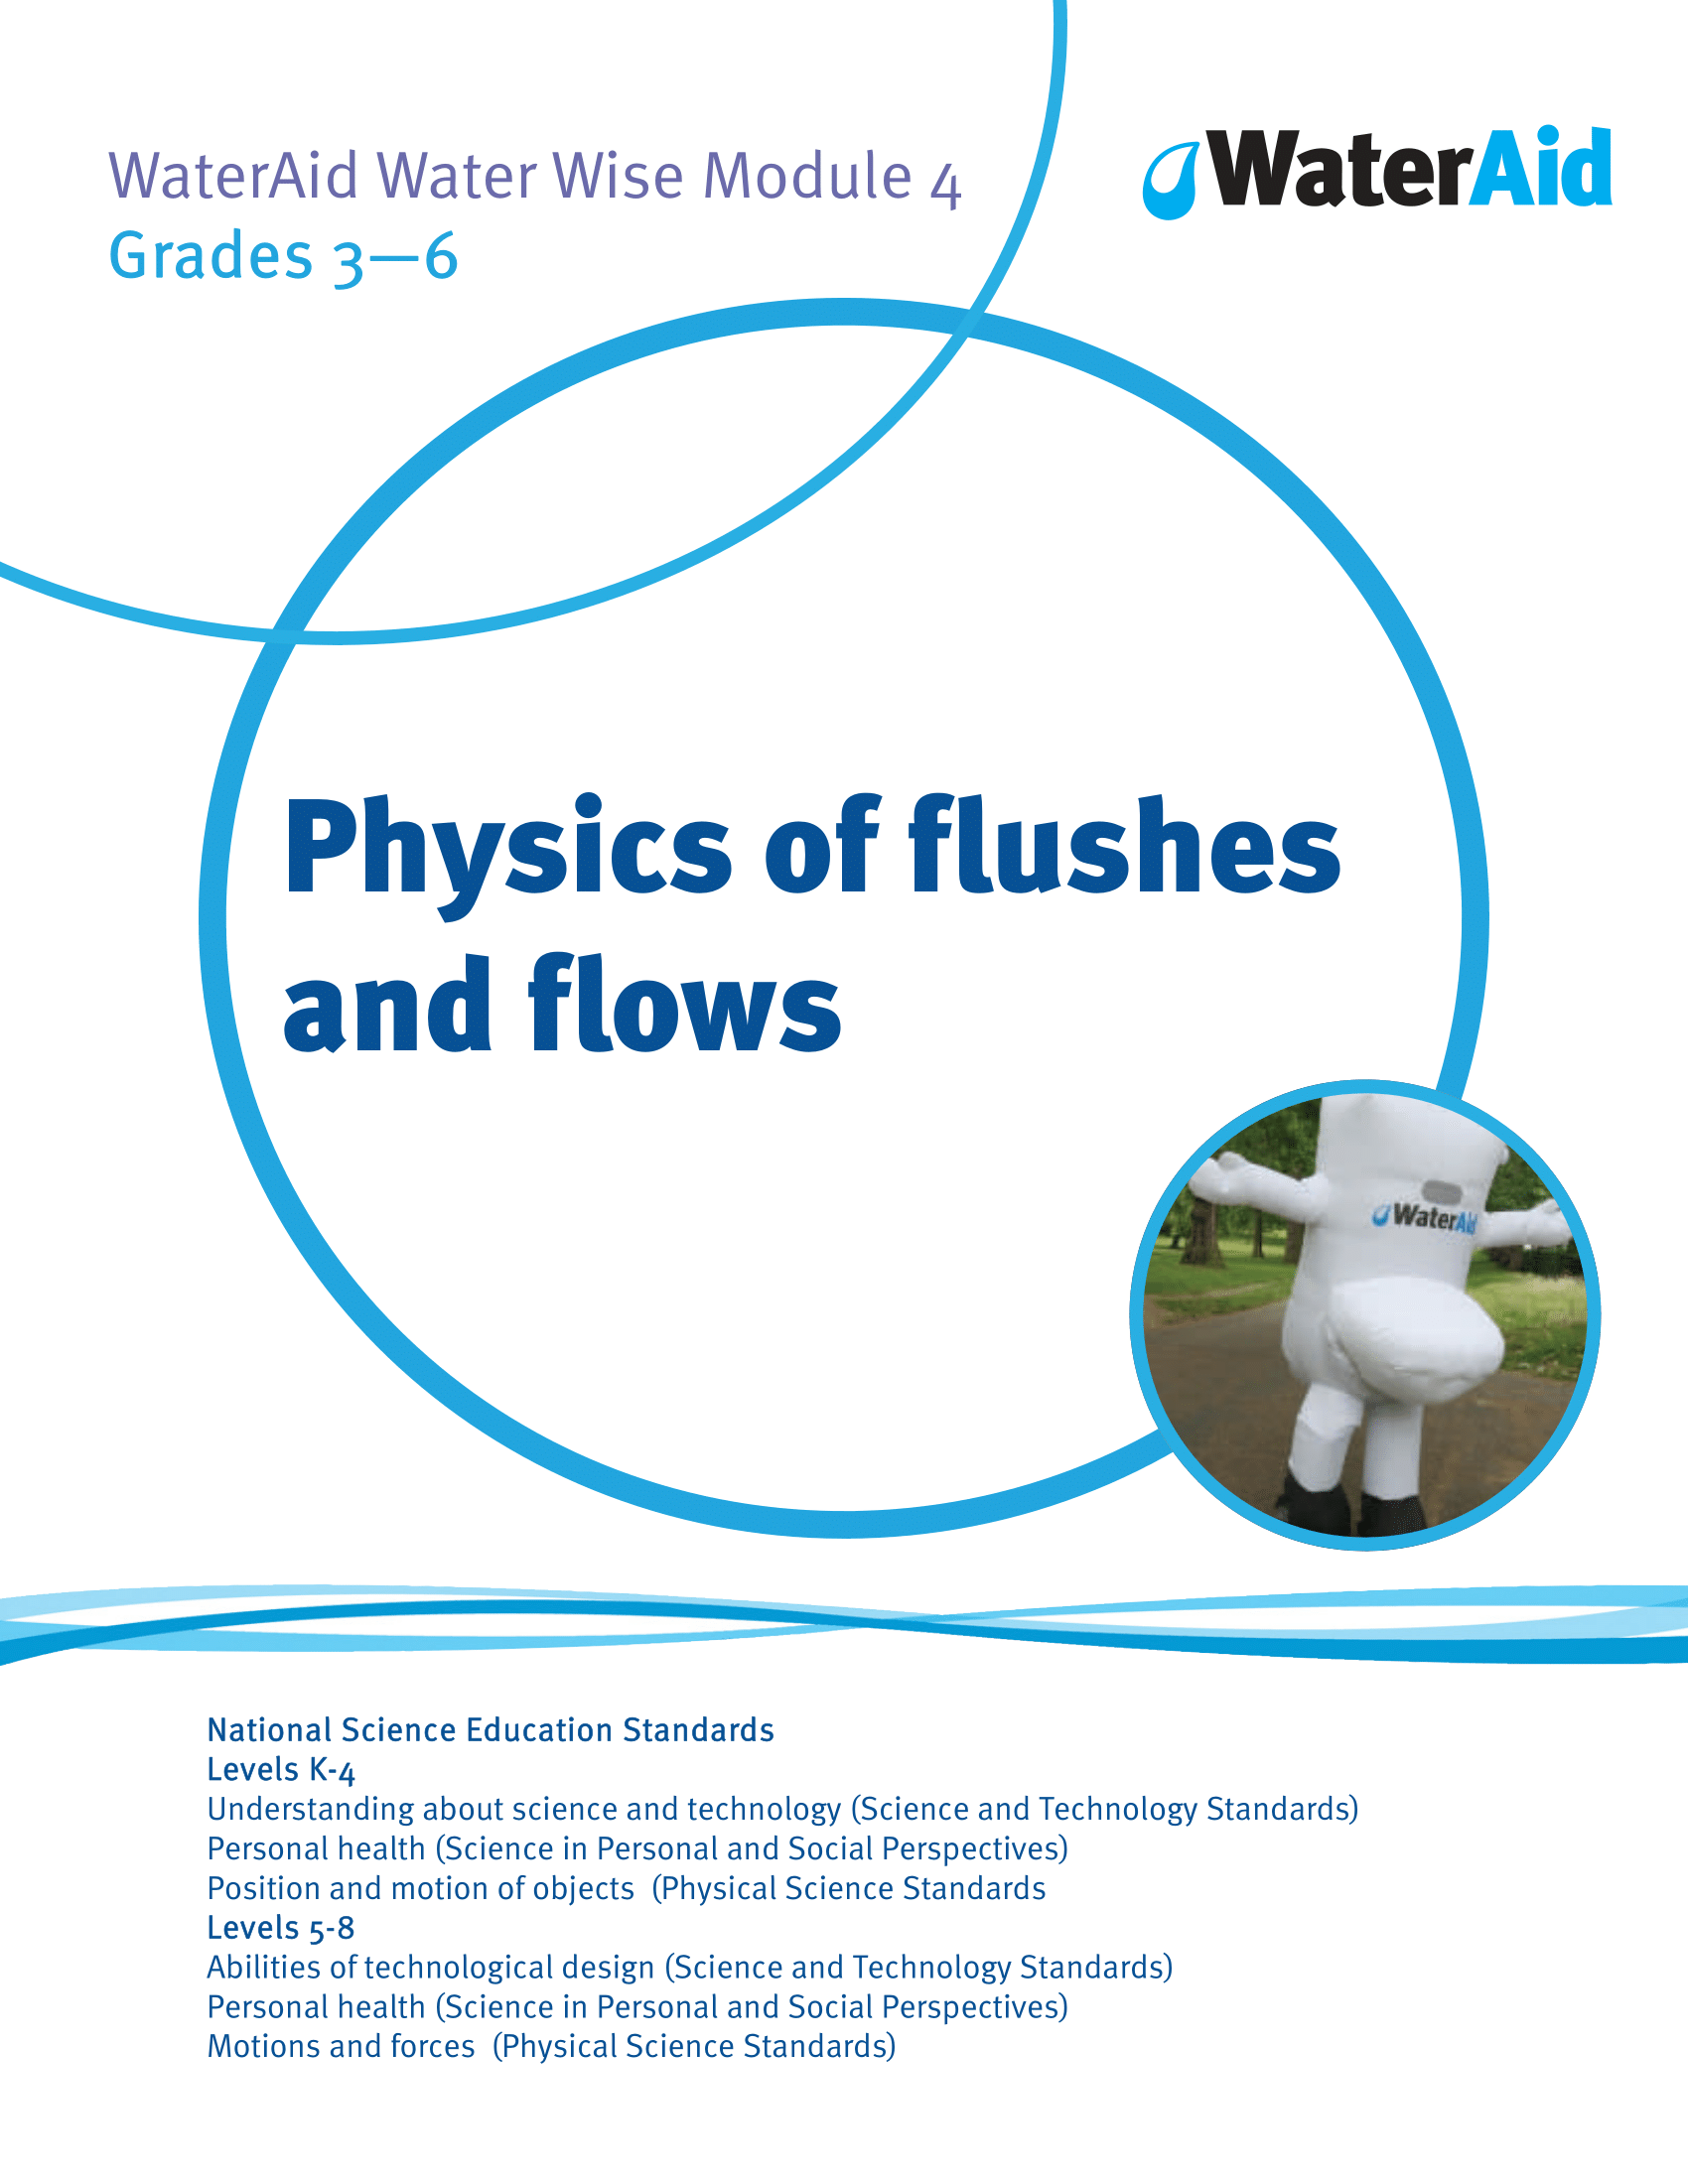 Physics of flushes and flows